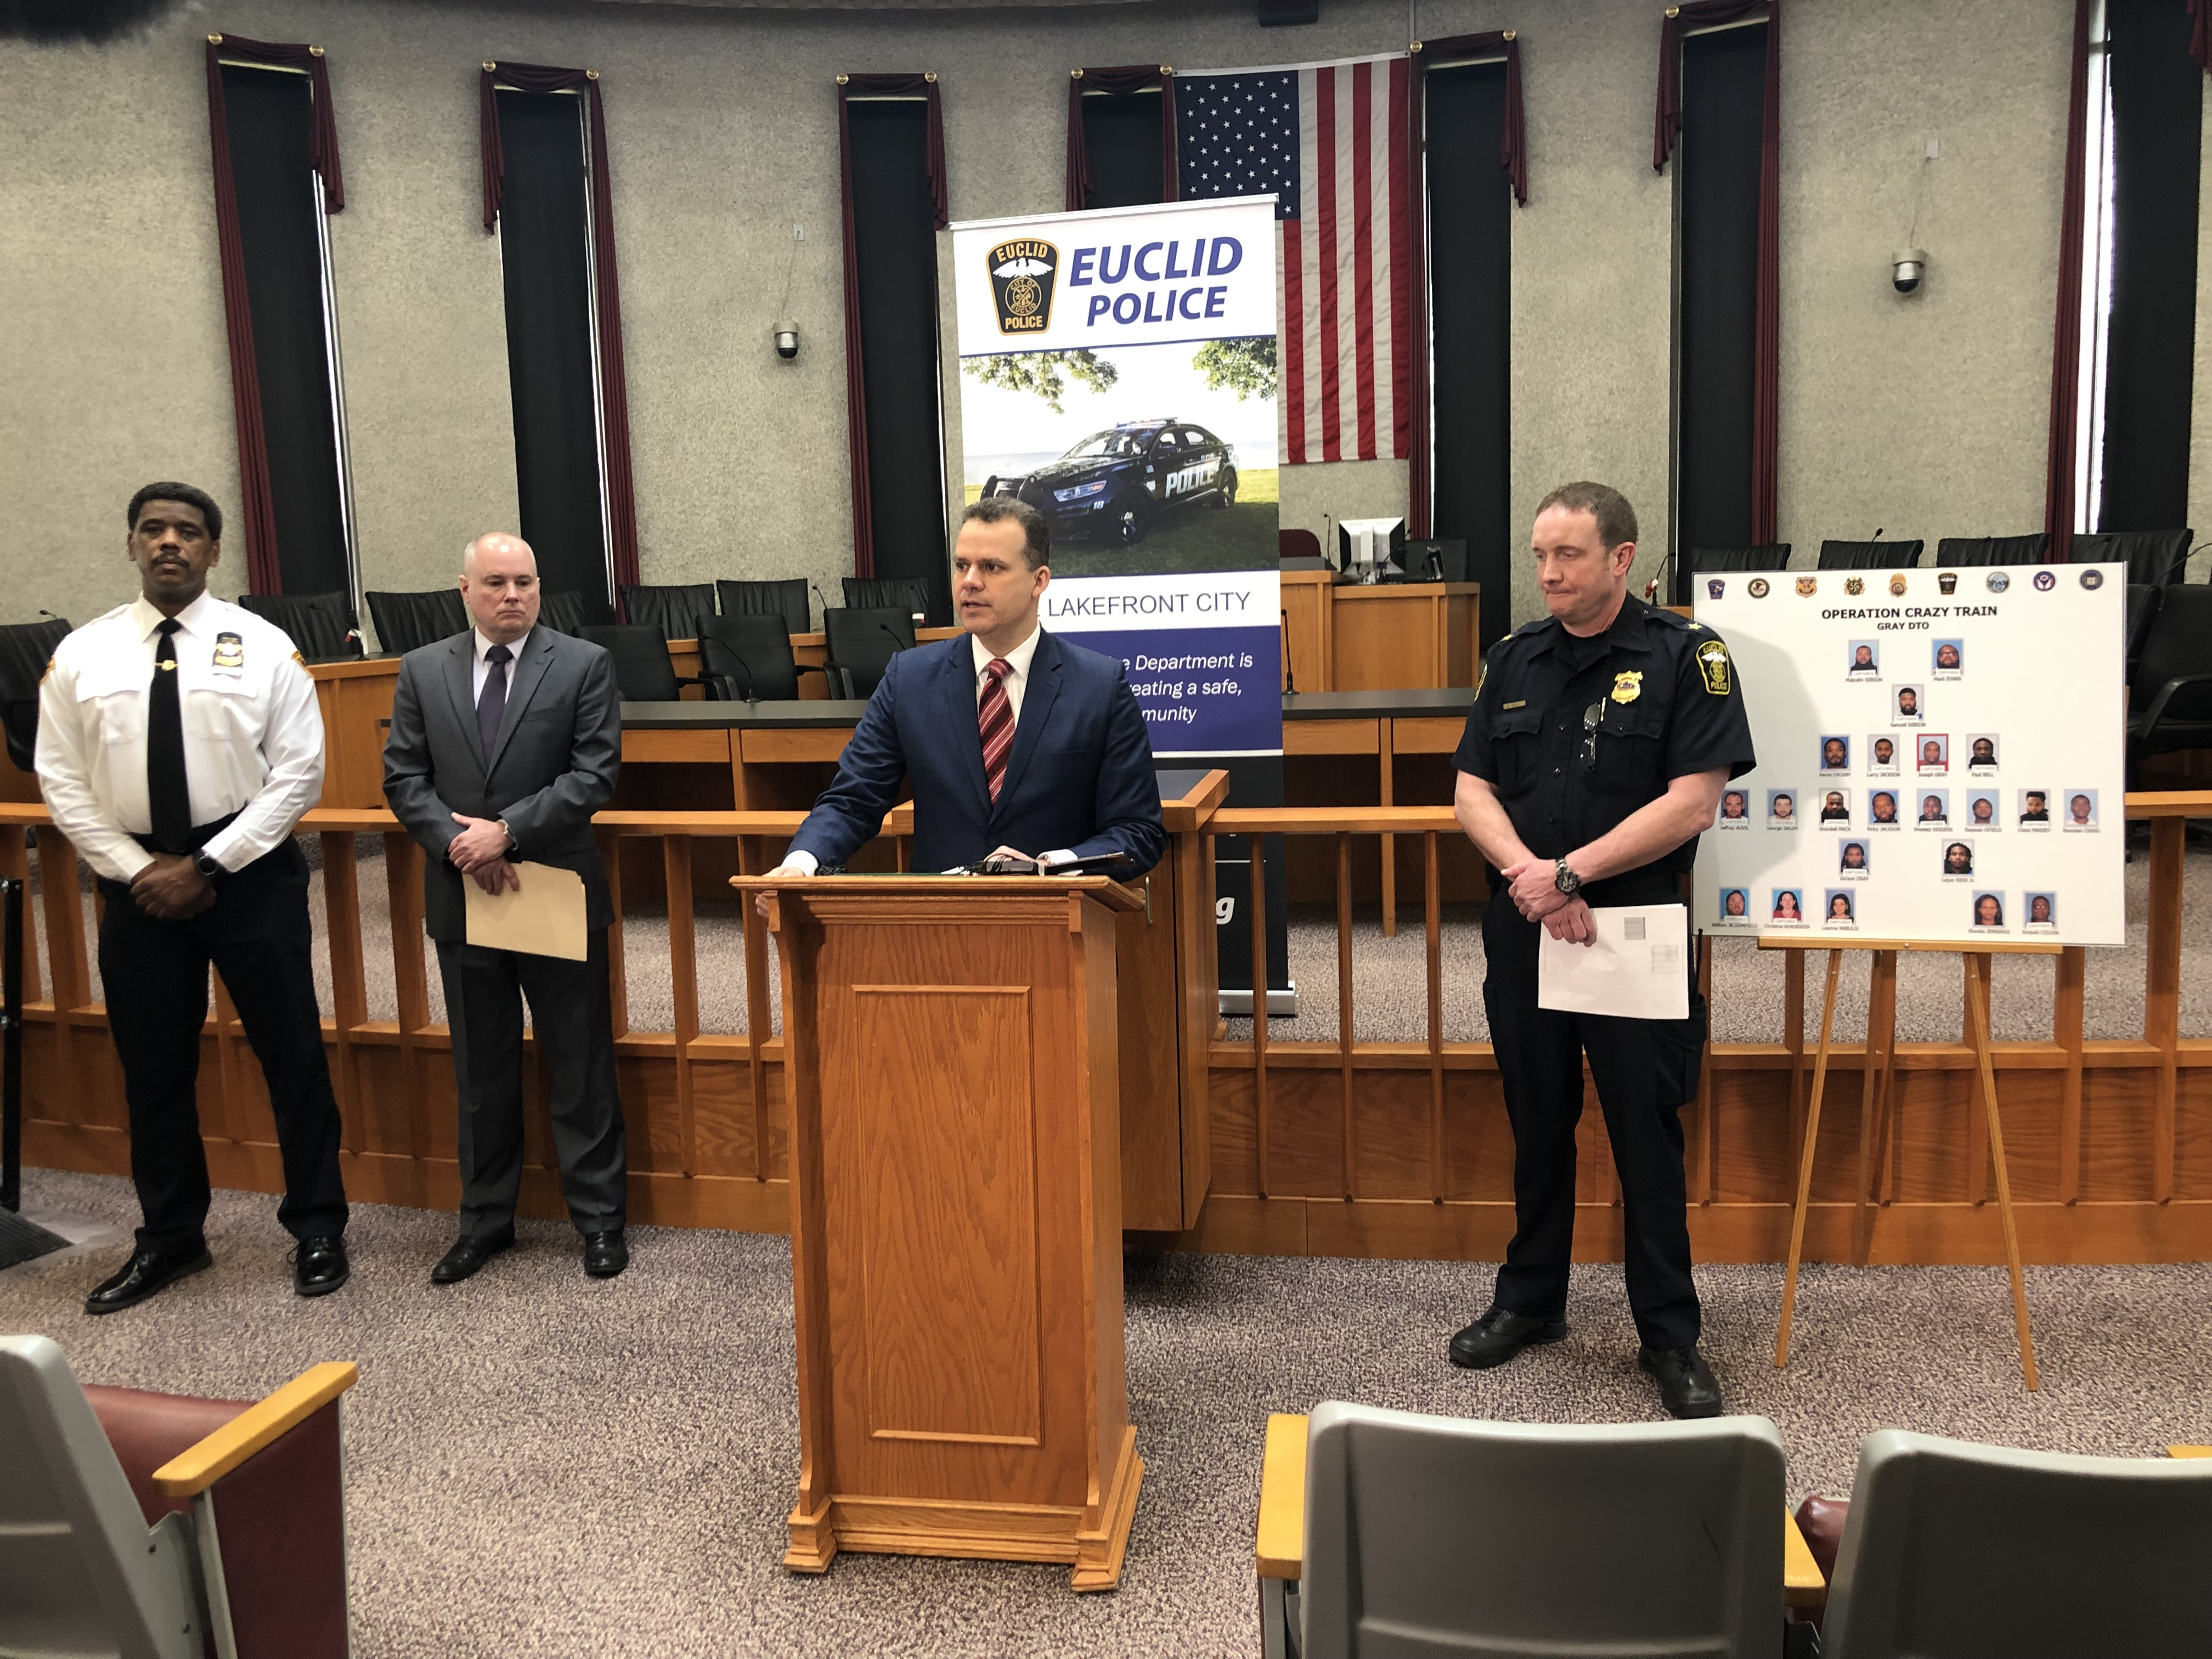 22 people indicted for their role to traffic fentanyl and